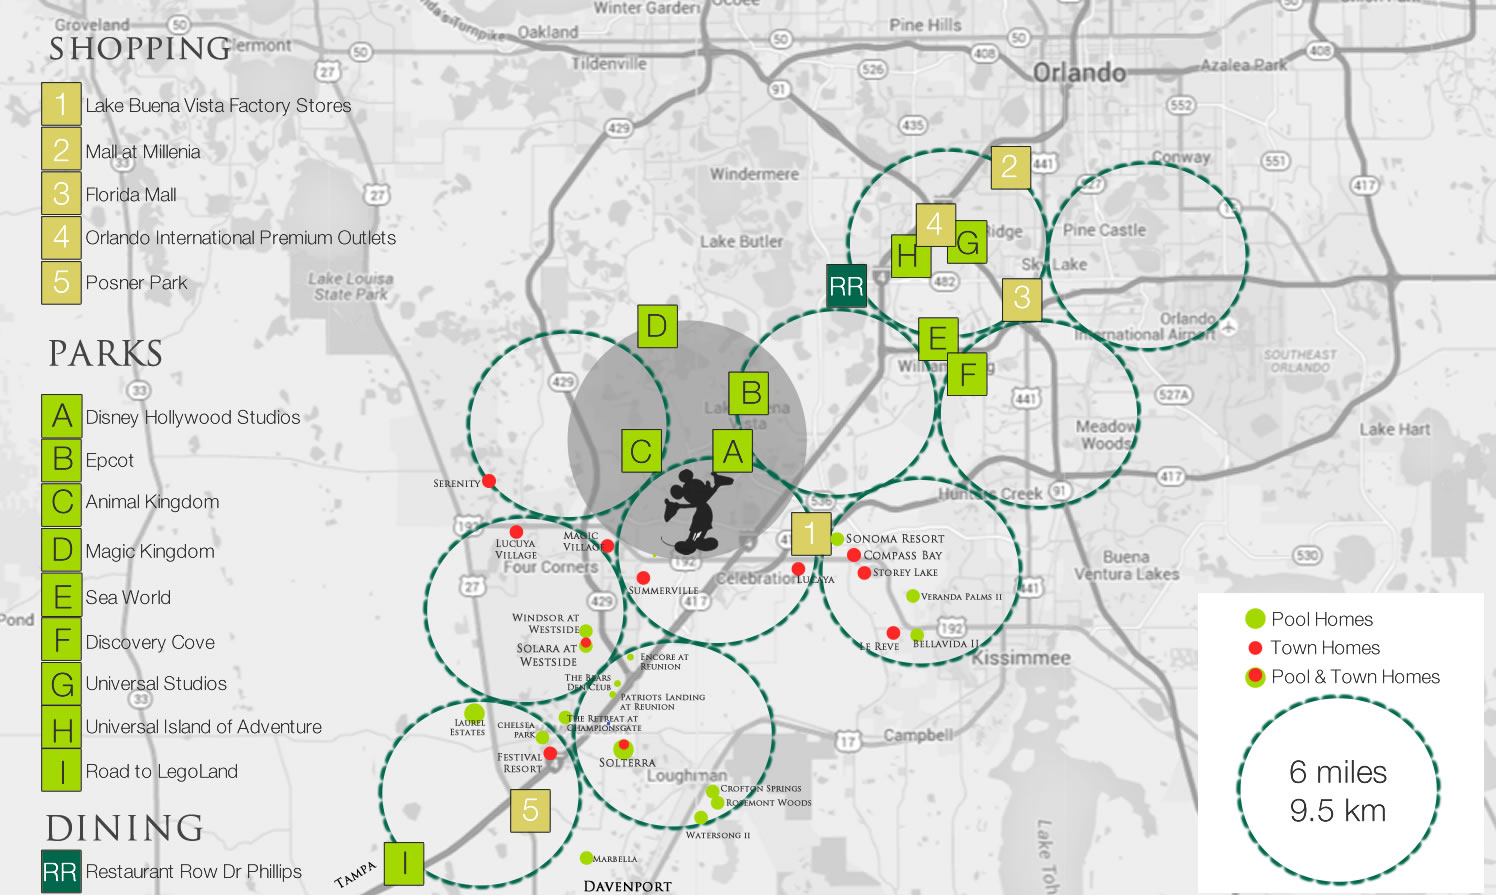 Orlando resort communities, theme parks and shopping map